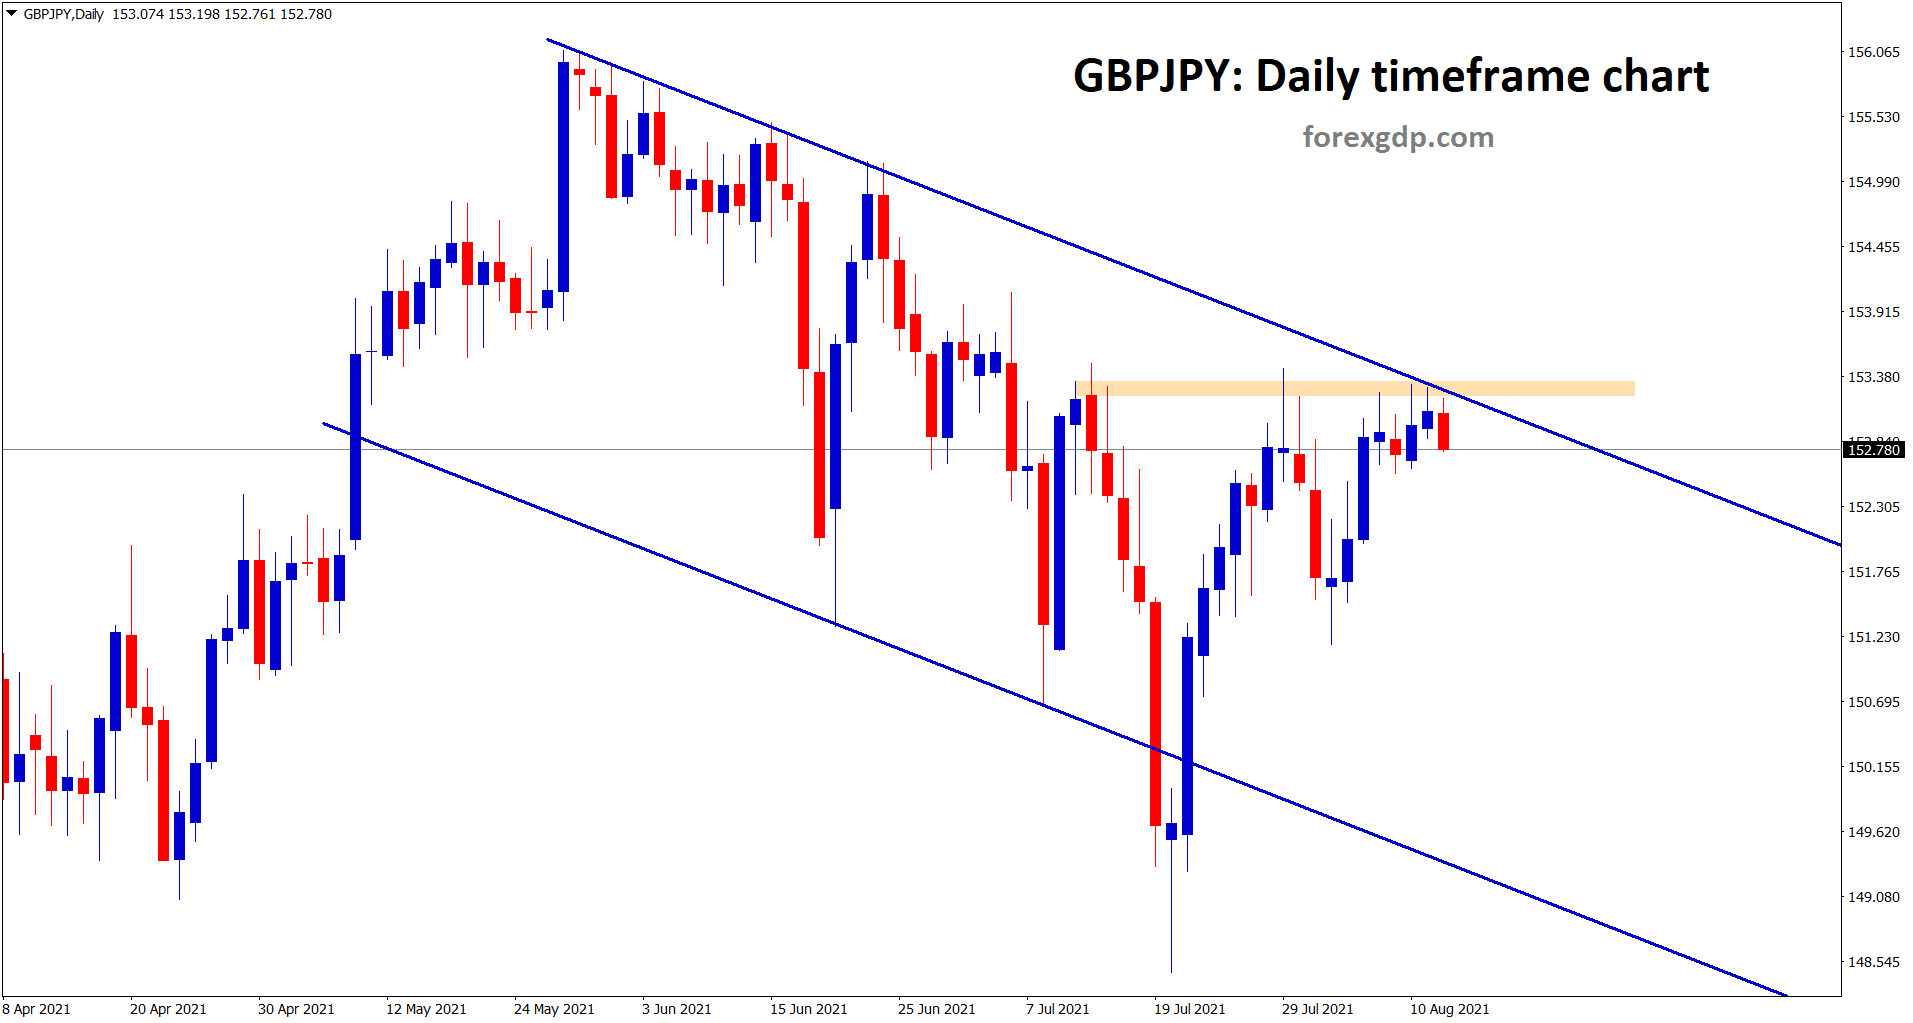 GBPJPY is falling down from the horizontal resistance and lower high zone of the descending downtrend channel in the daily timeframe